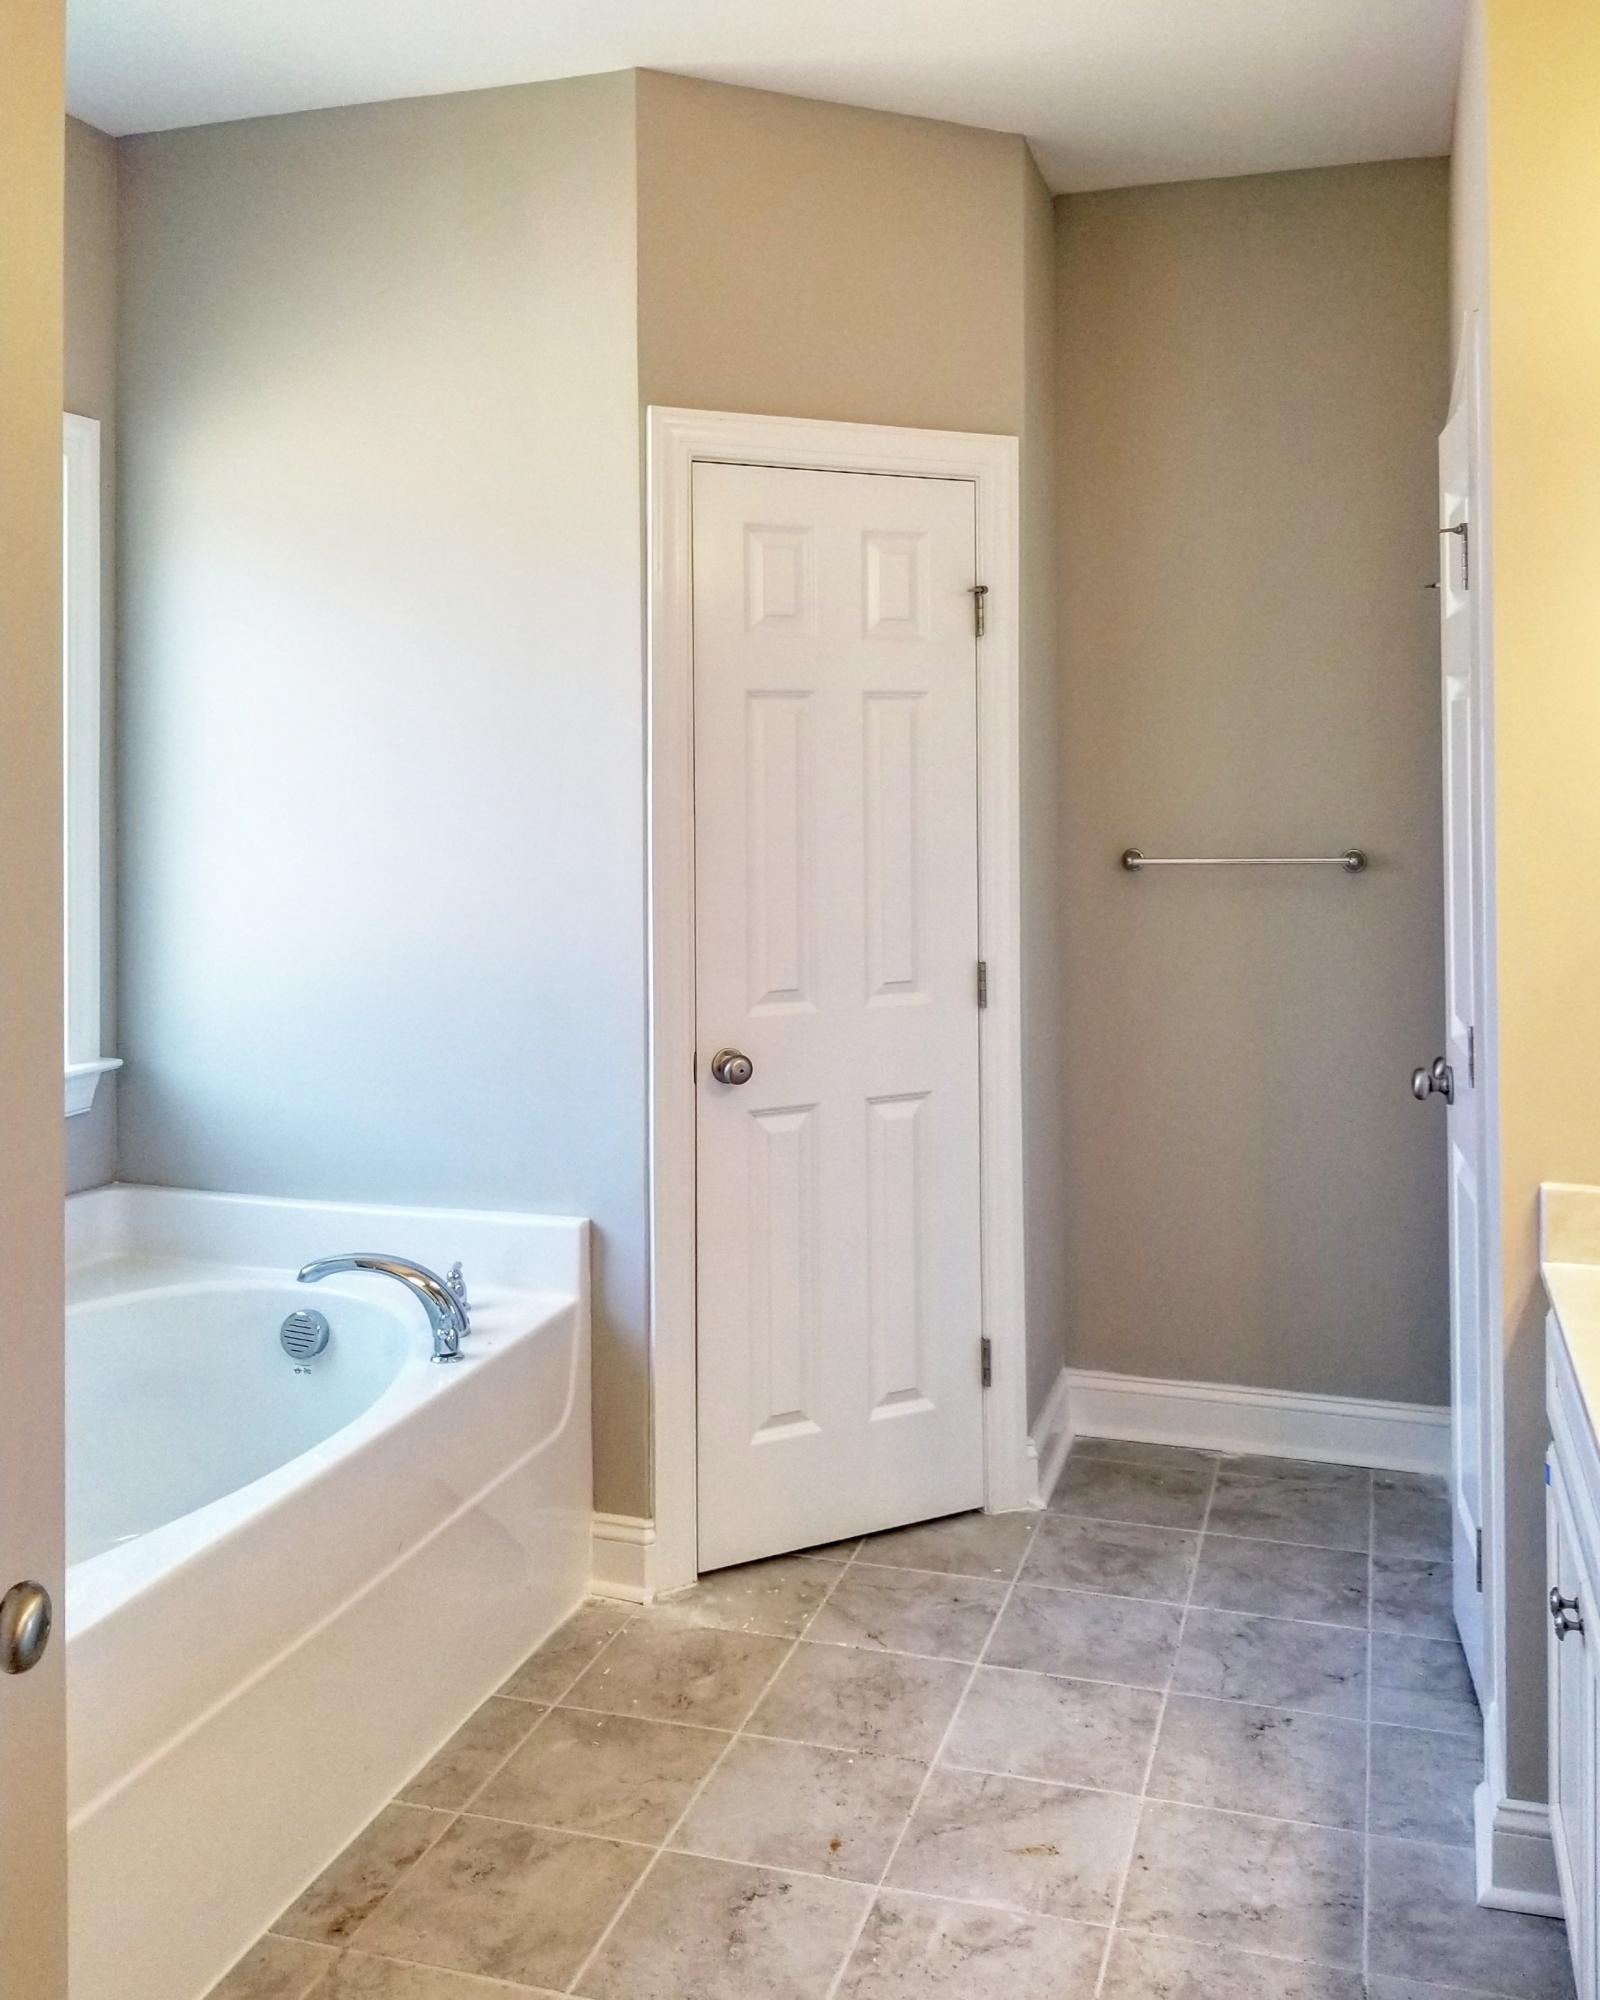 Bathroom featured in the Camden By Konter Quality Homes in Savannah, GA